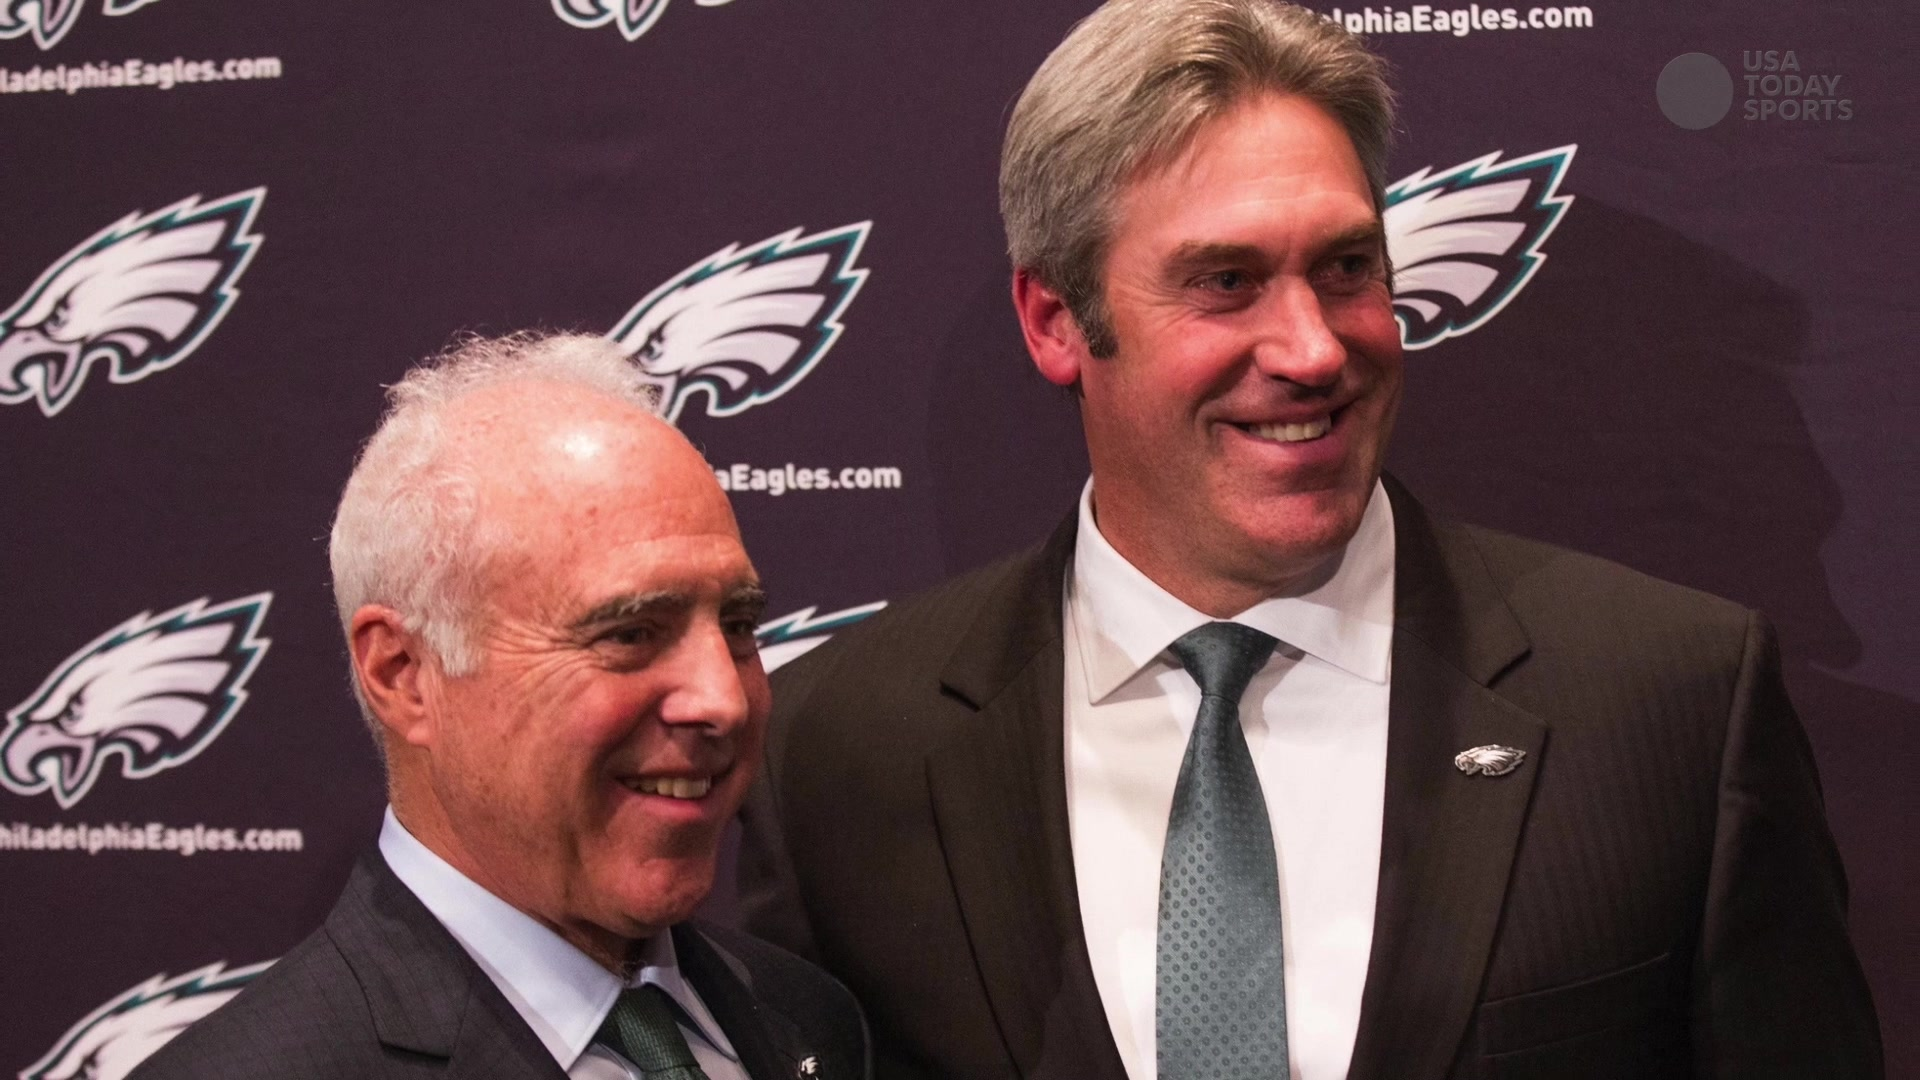 Eagles Trade for No. 2 Pick in NFL Draft